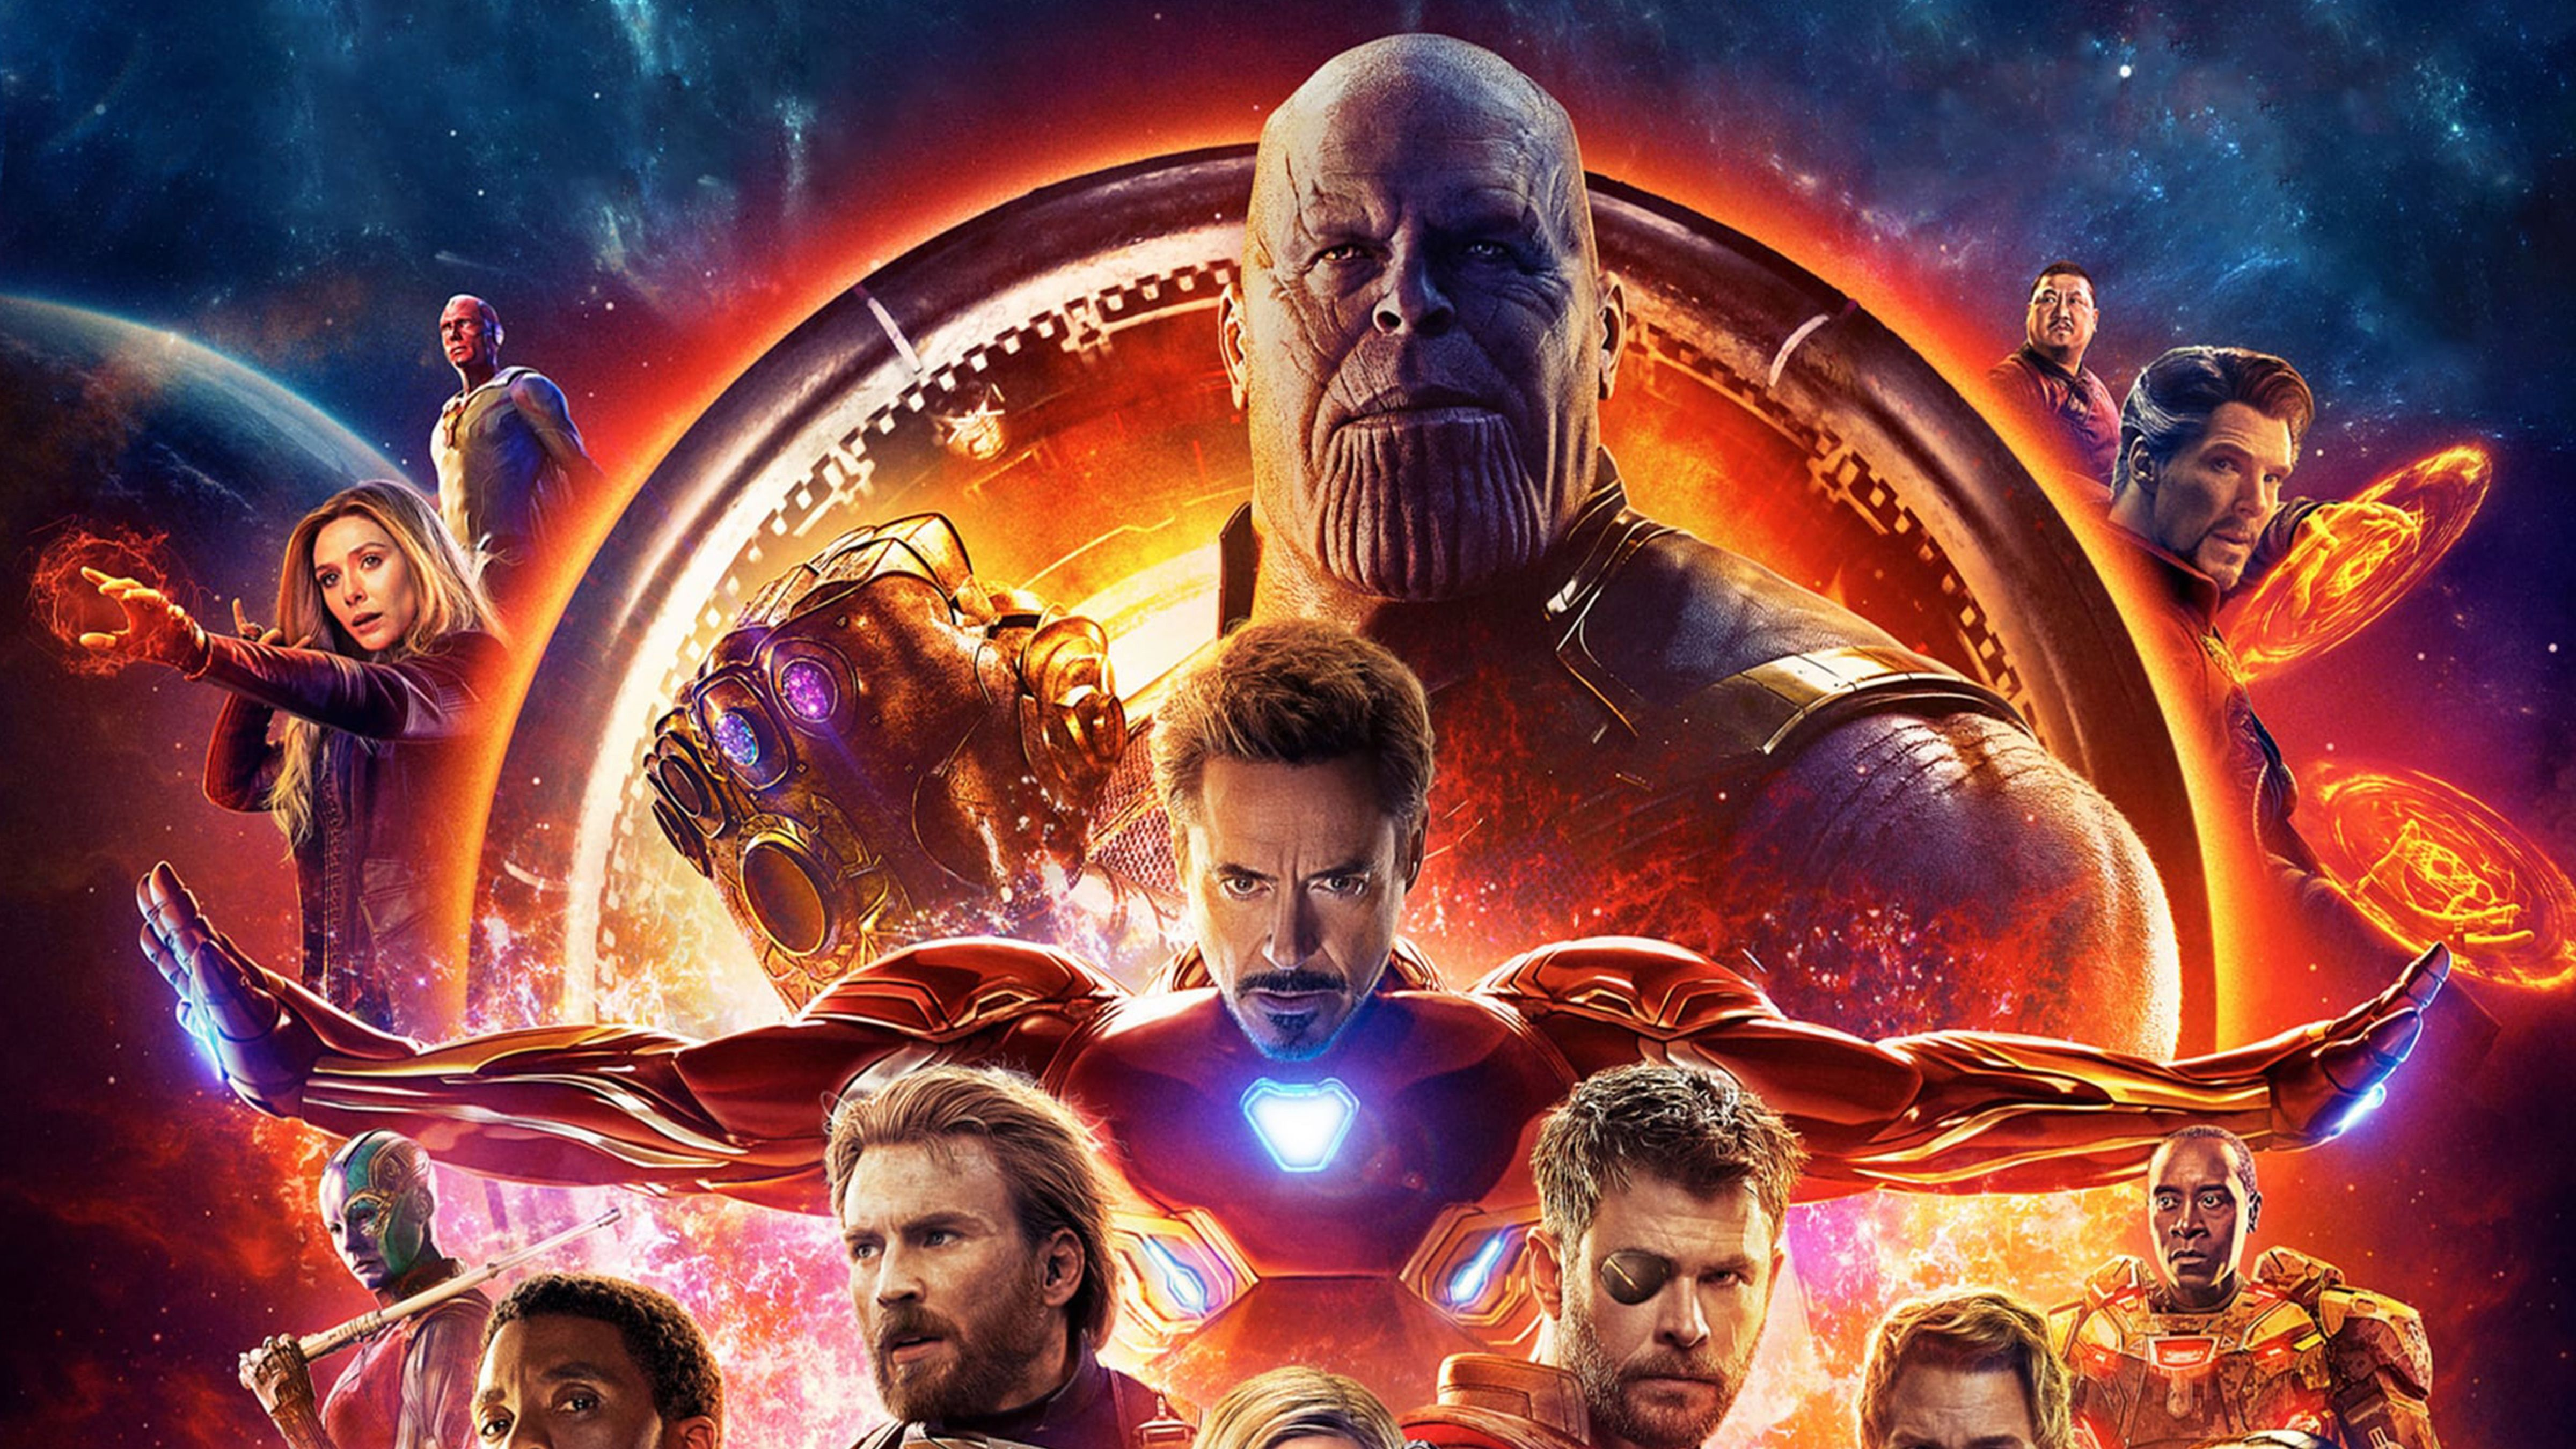 Avengers Infinity War Iphone Wallpaper: Avengers: Infinity War 4K Wallpapers